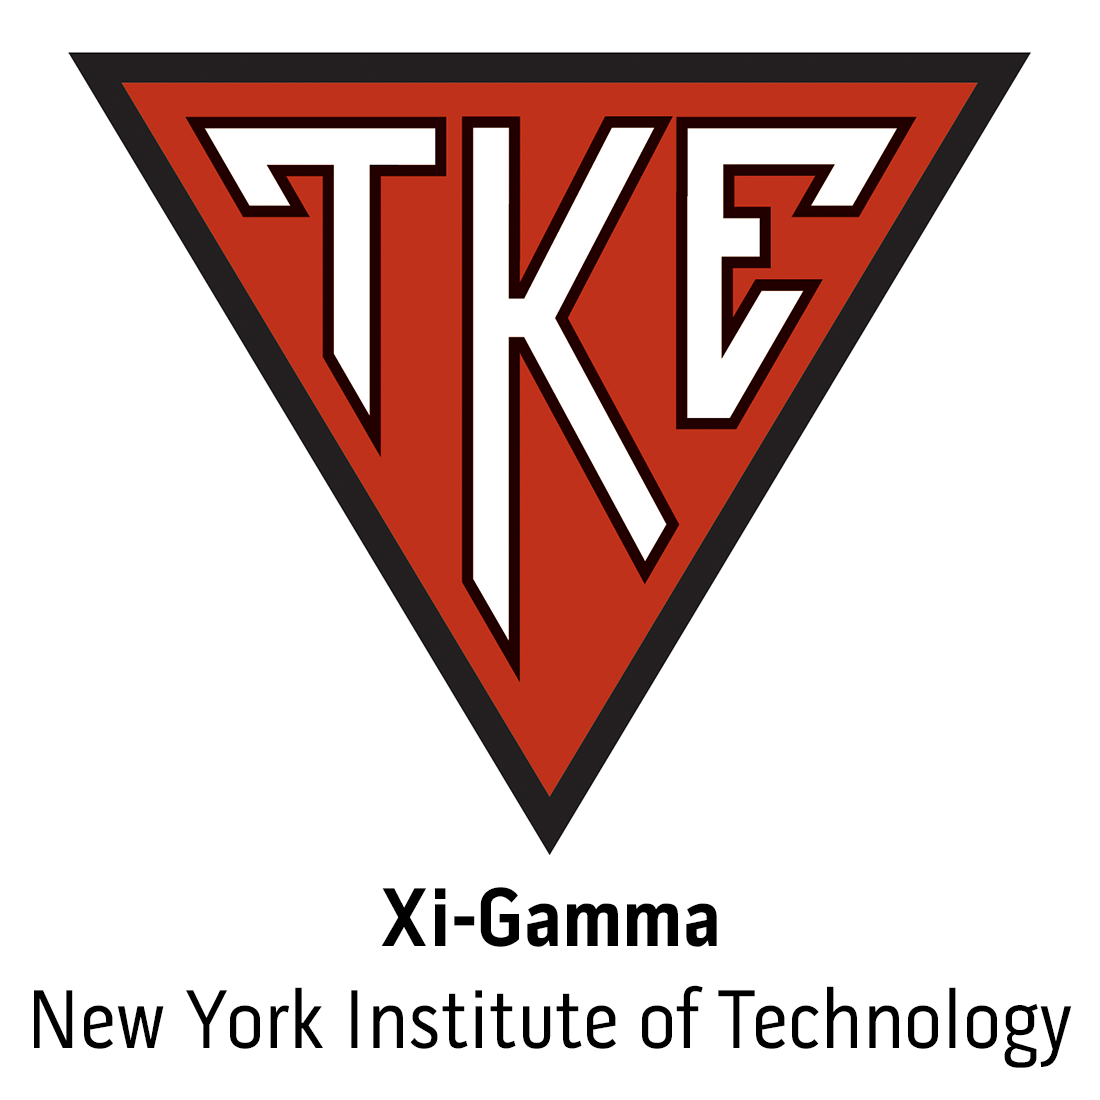 Xi-Gamma Chapter at New York Institute of Technology